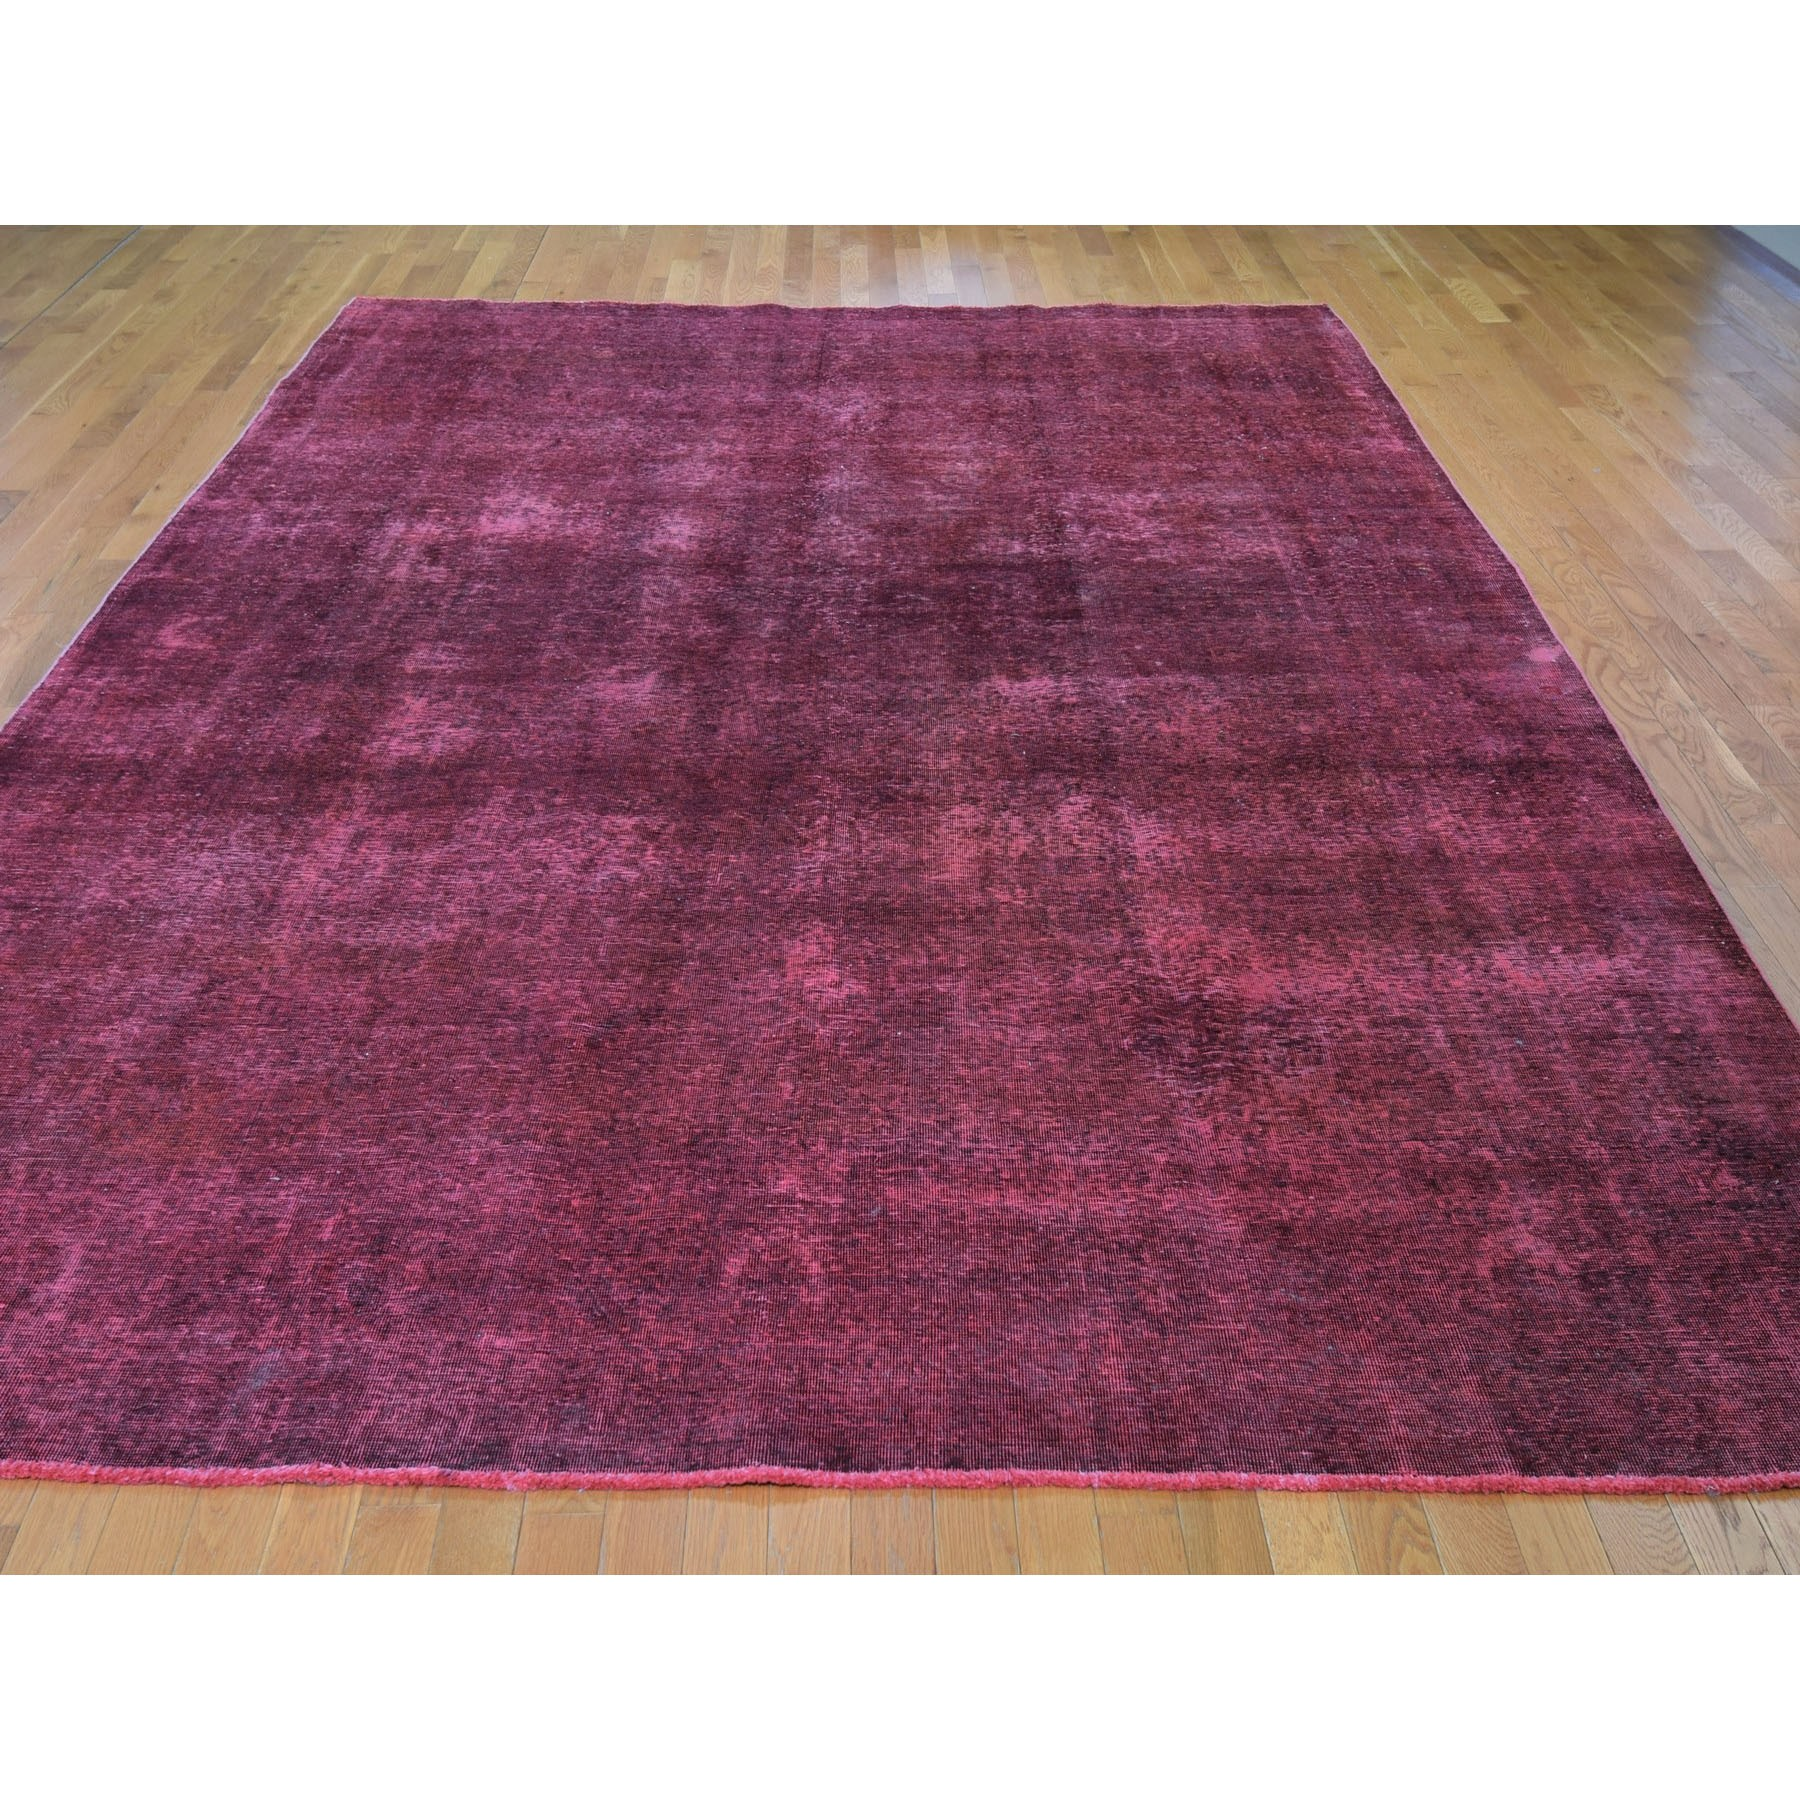 9-1 x13-  Red Overdyed Tabriz Worn Pile Hand Knotted Oriental Rug